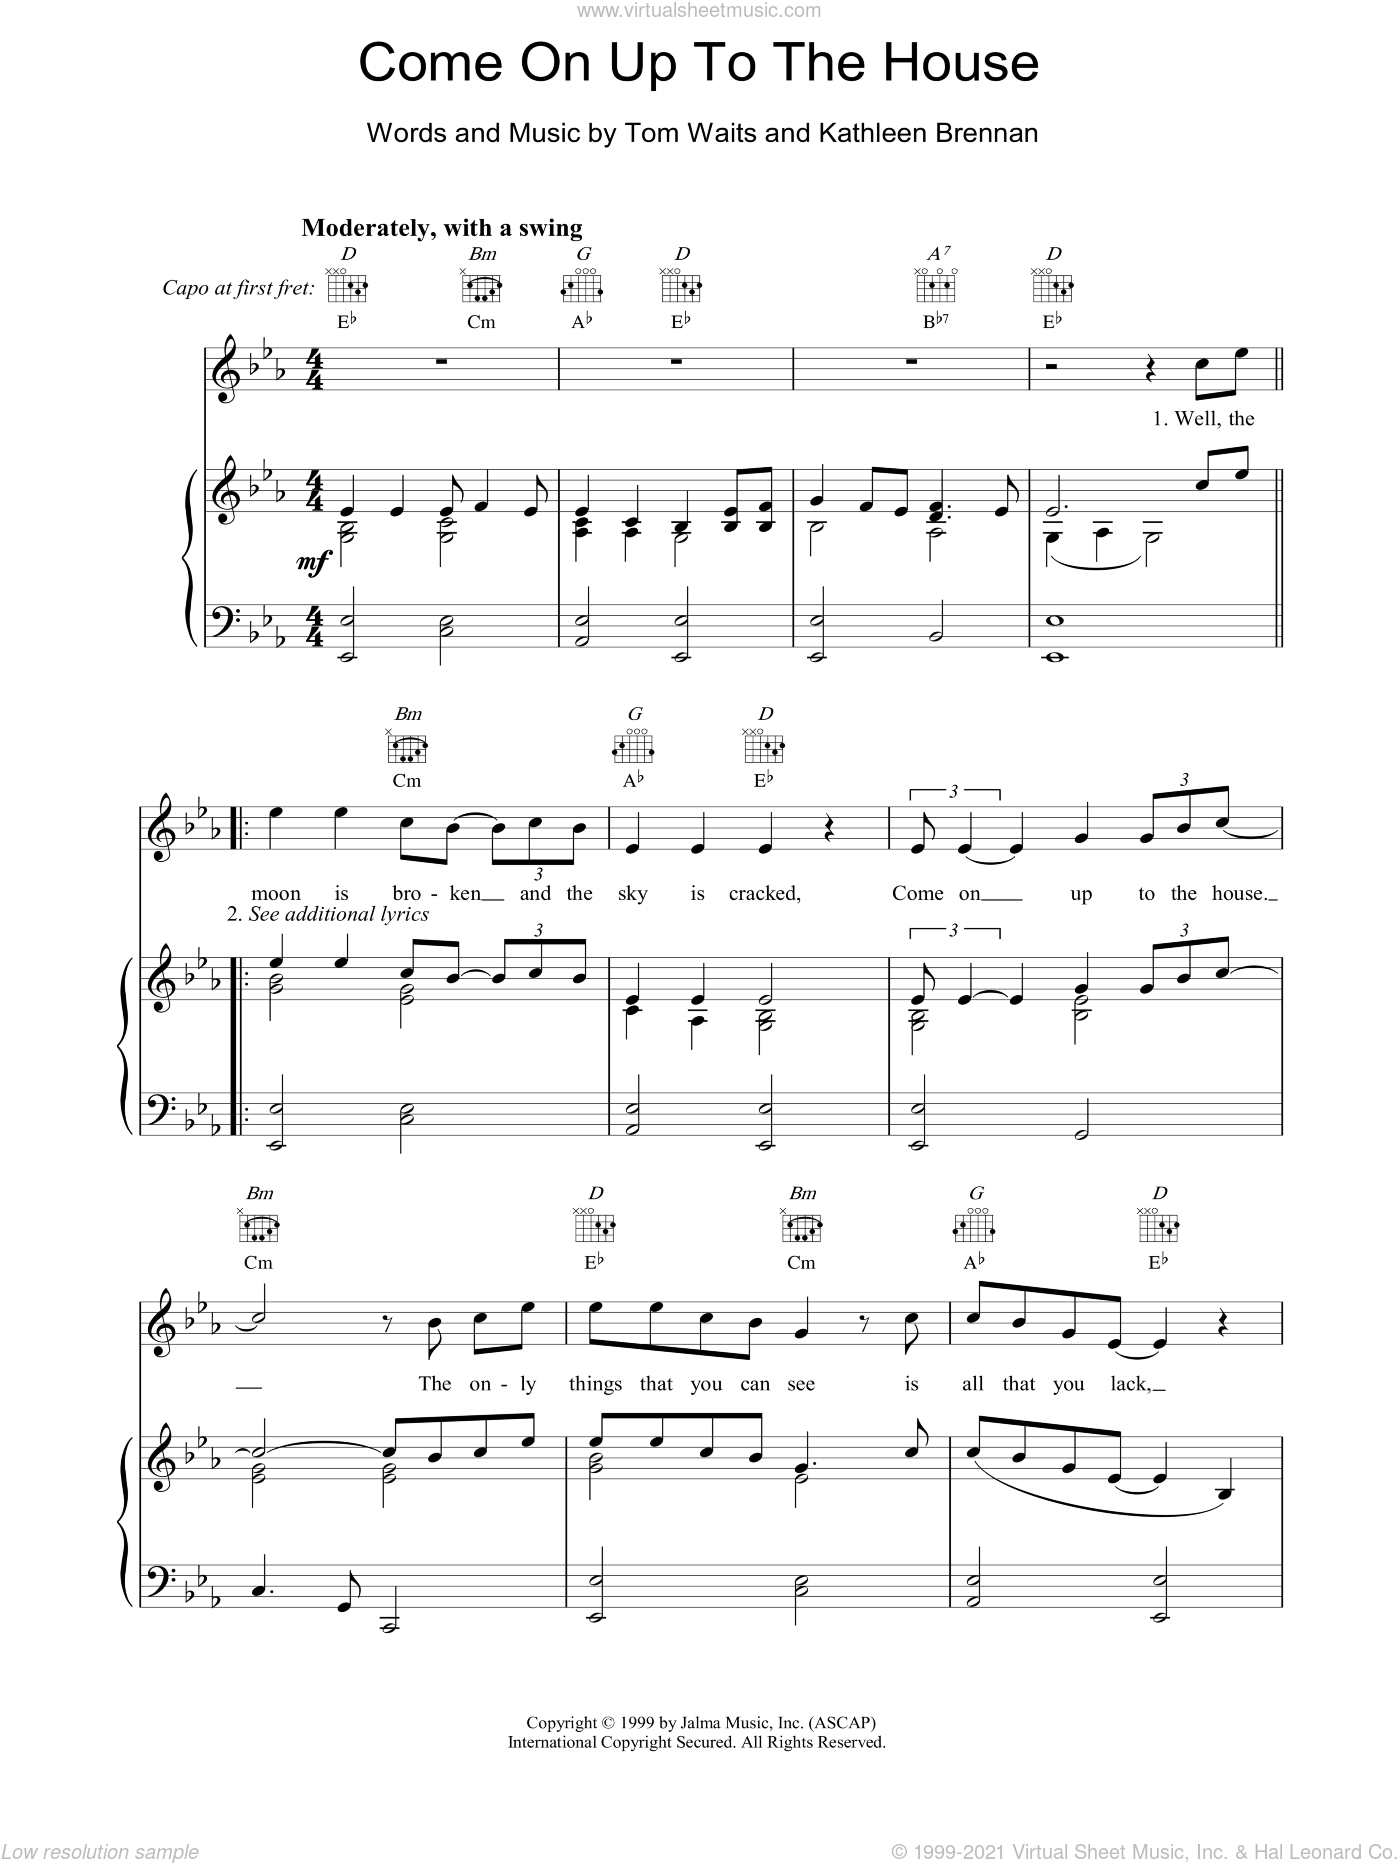 Come On Up To The House sheet music for voice, piano or guitar by Tom Waits. Score Image Preview.